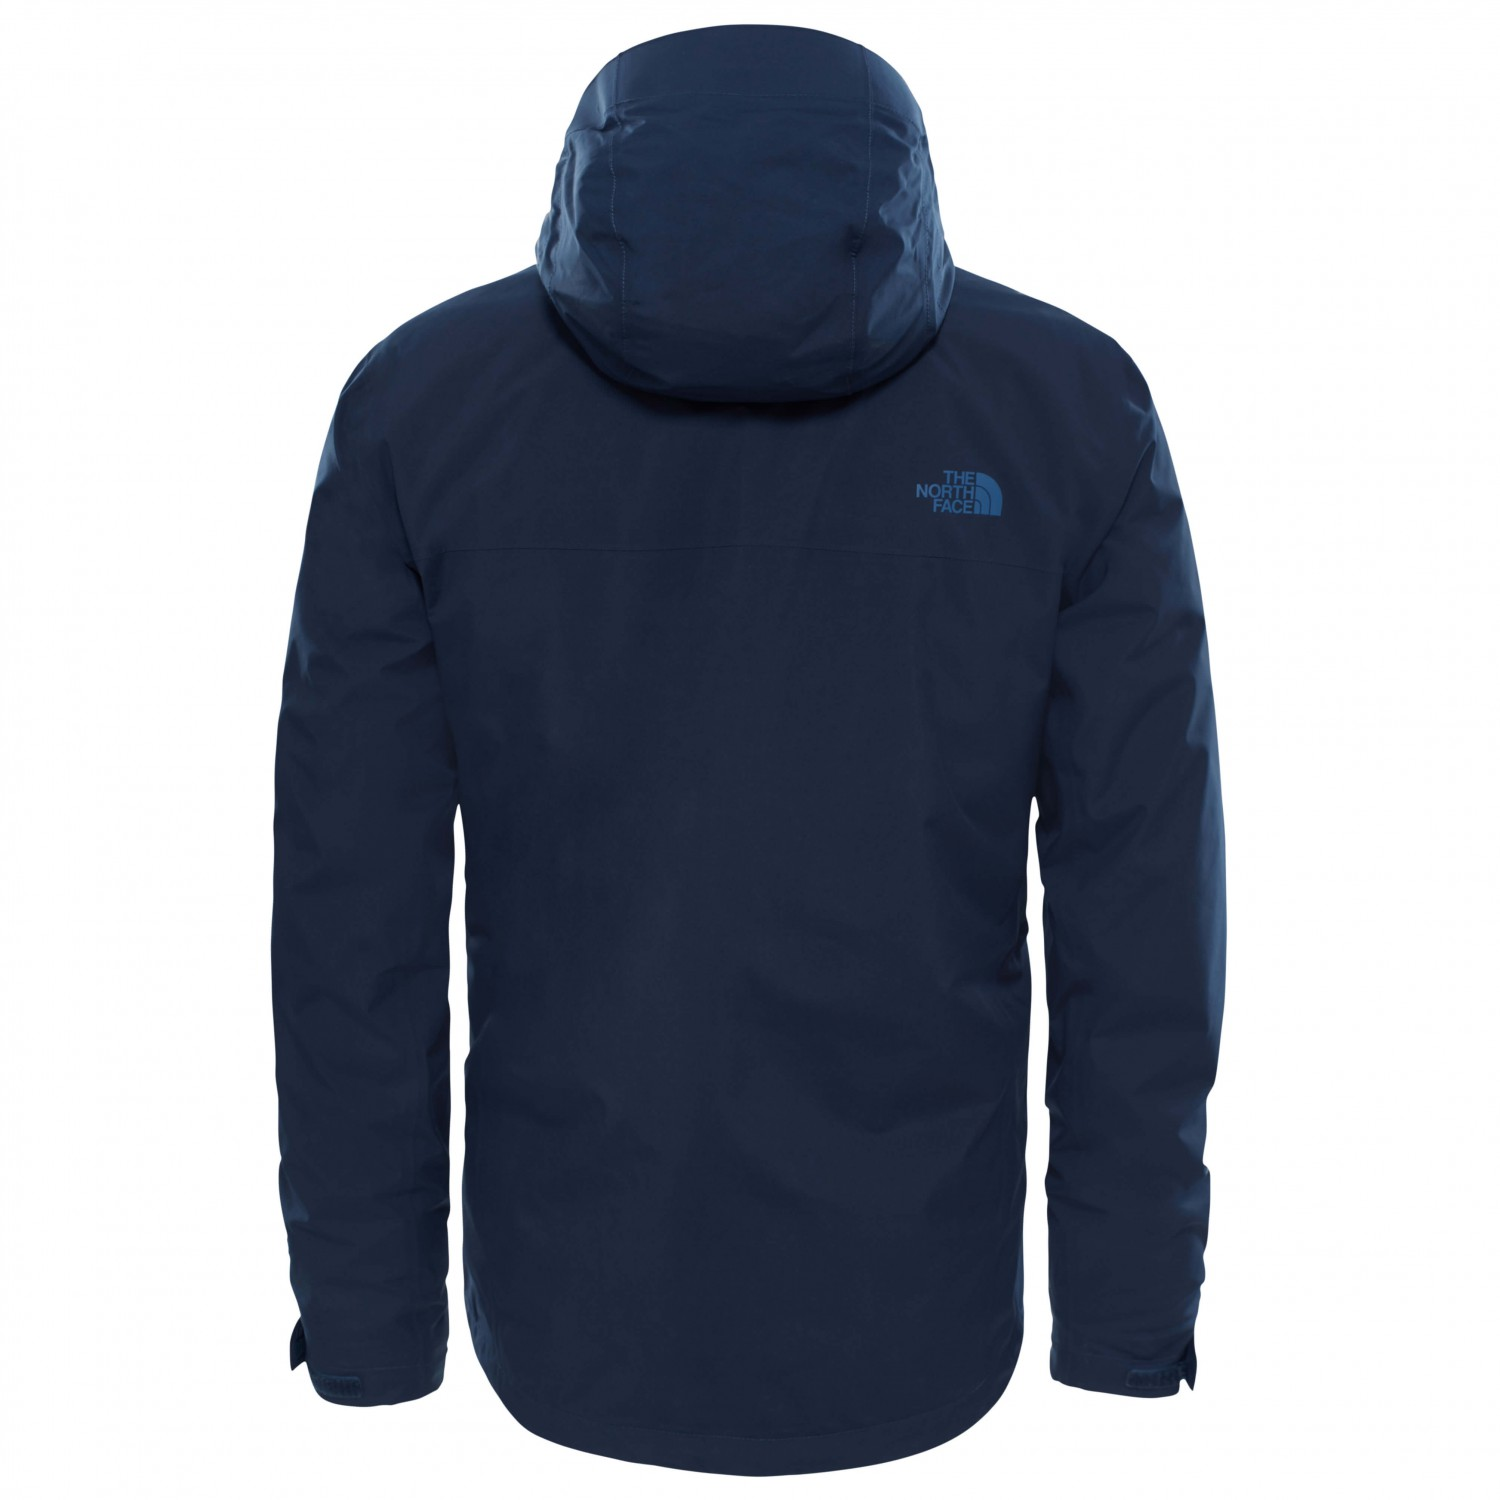 746e7b2328f2 ... The North Face - Mountain Light Triclimate Jacket - 3-in-1 jacket ...